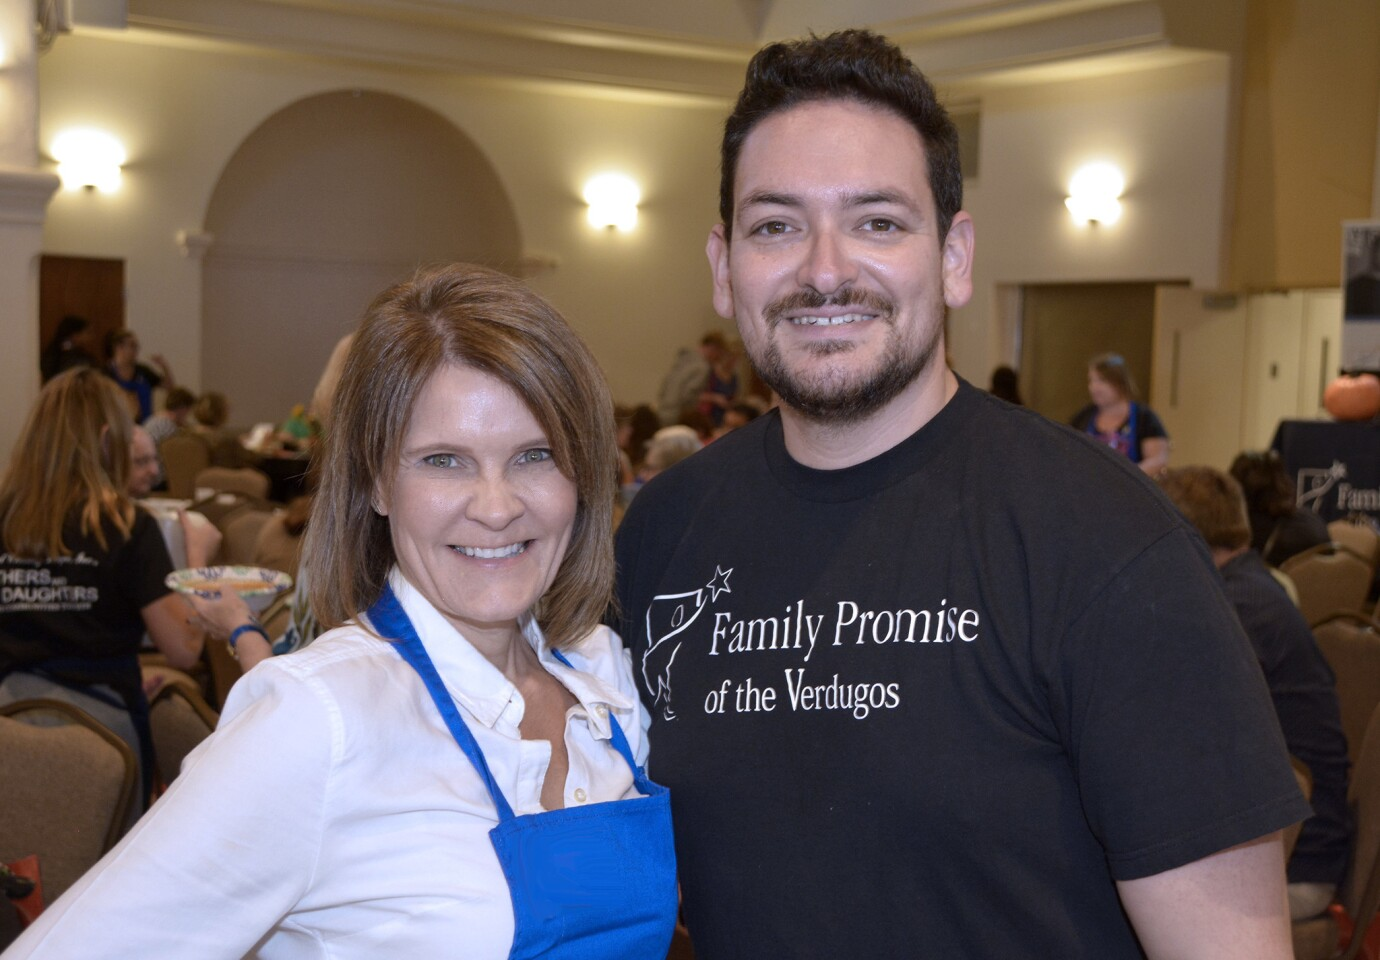 Family Promise of the Verdugos supporters were welcomed to this year's Empty Bowl fundraiser by Albert Hernandez and Jane Winter.